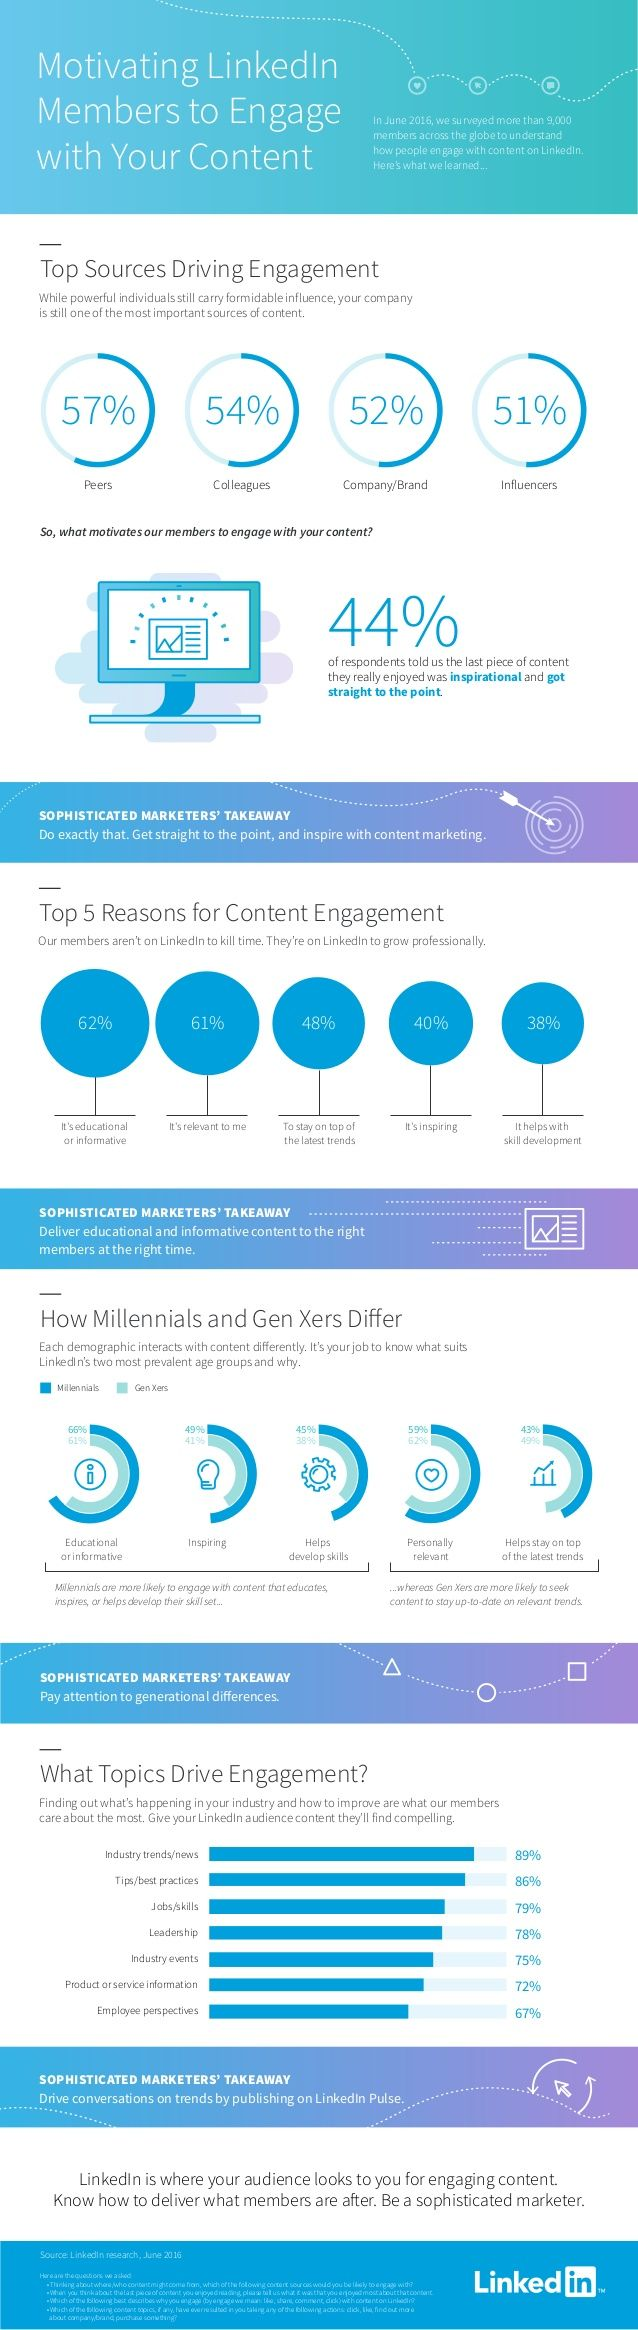 What Types of Content Generate the Best Response on LinkedIn? [Infographic] | Social Media Today